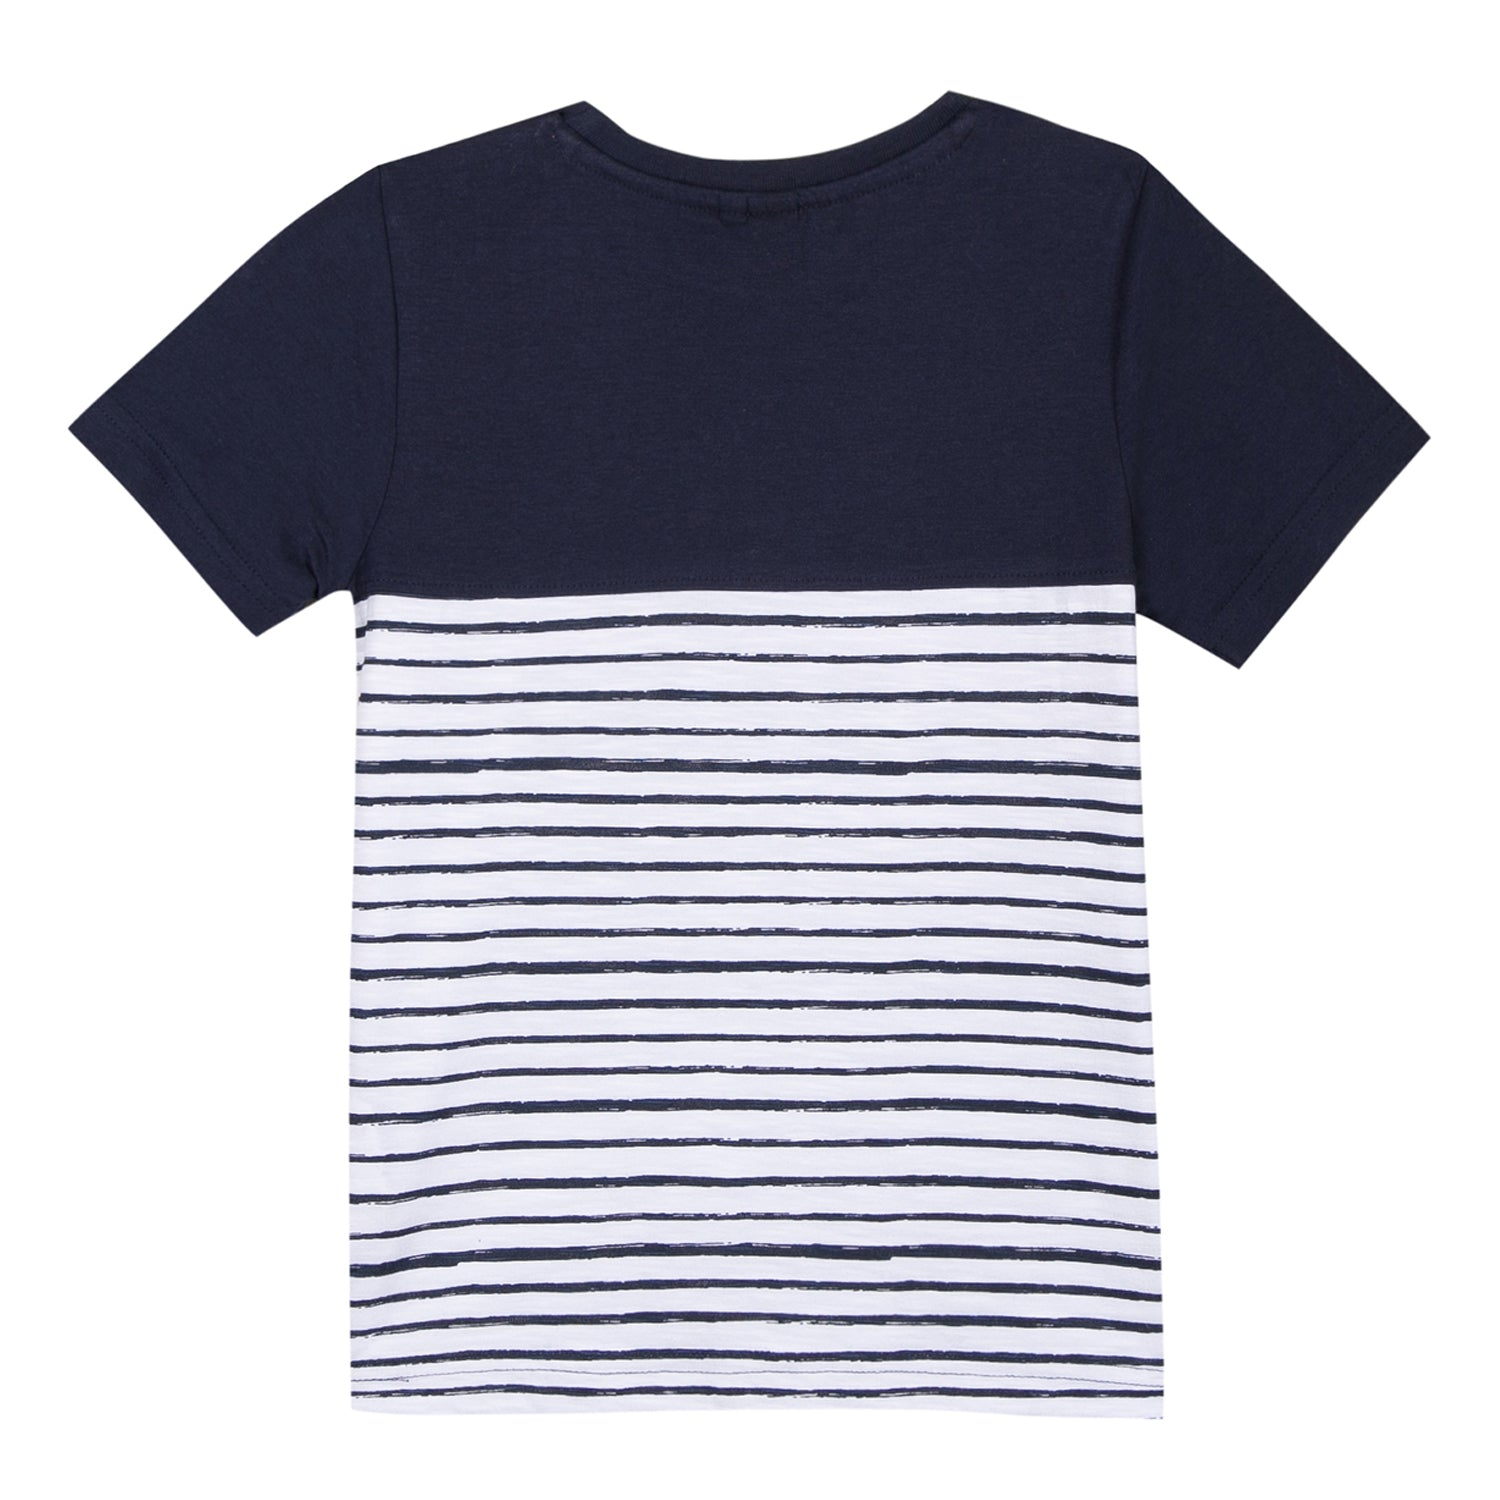 3Pommes Striped West Coast T-shirt